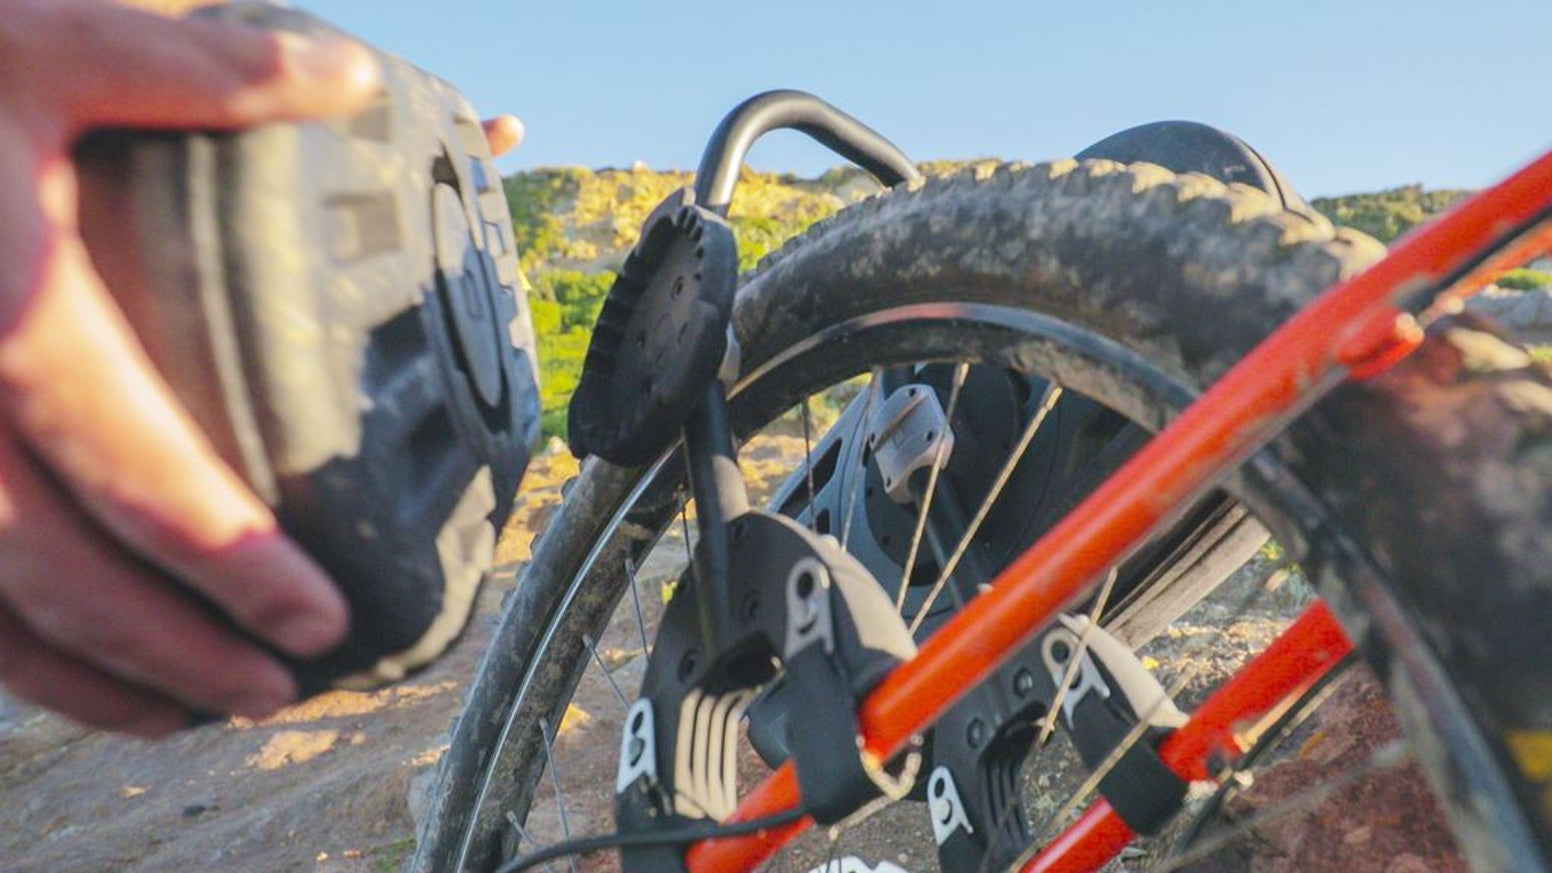 Aeroe BikePacking - the most versatile means of carrying gear on a bike.